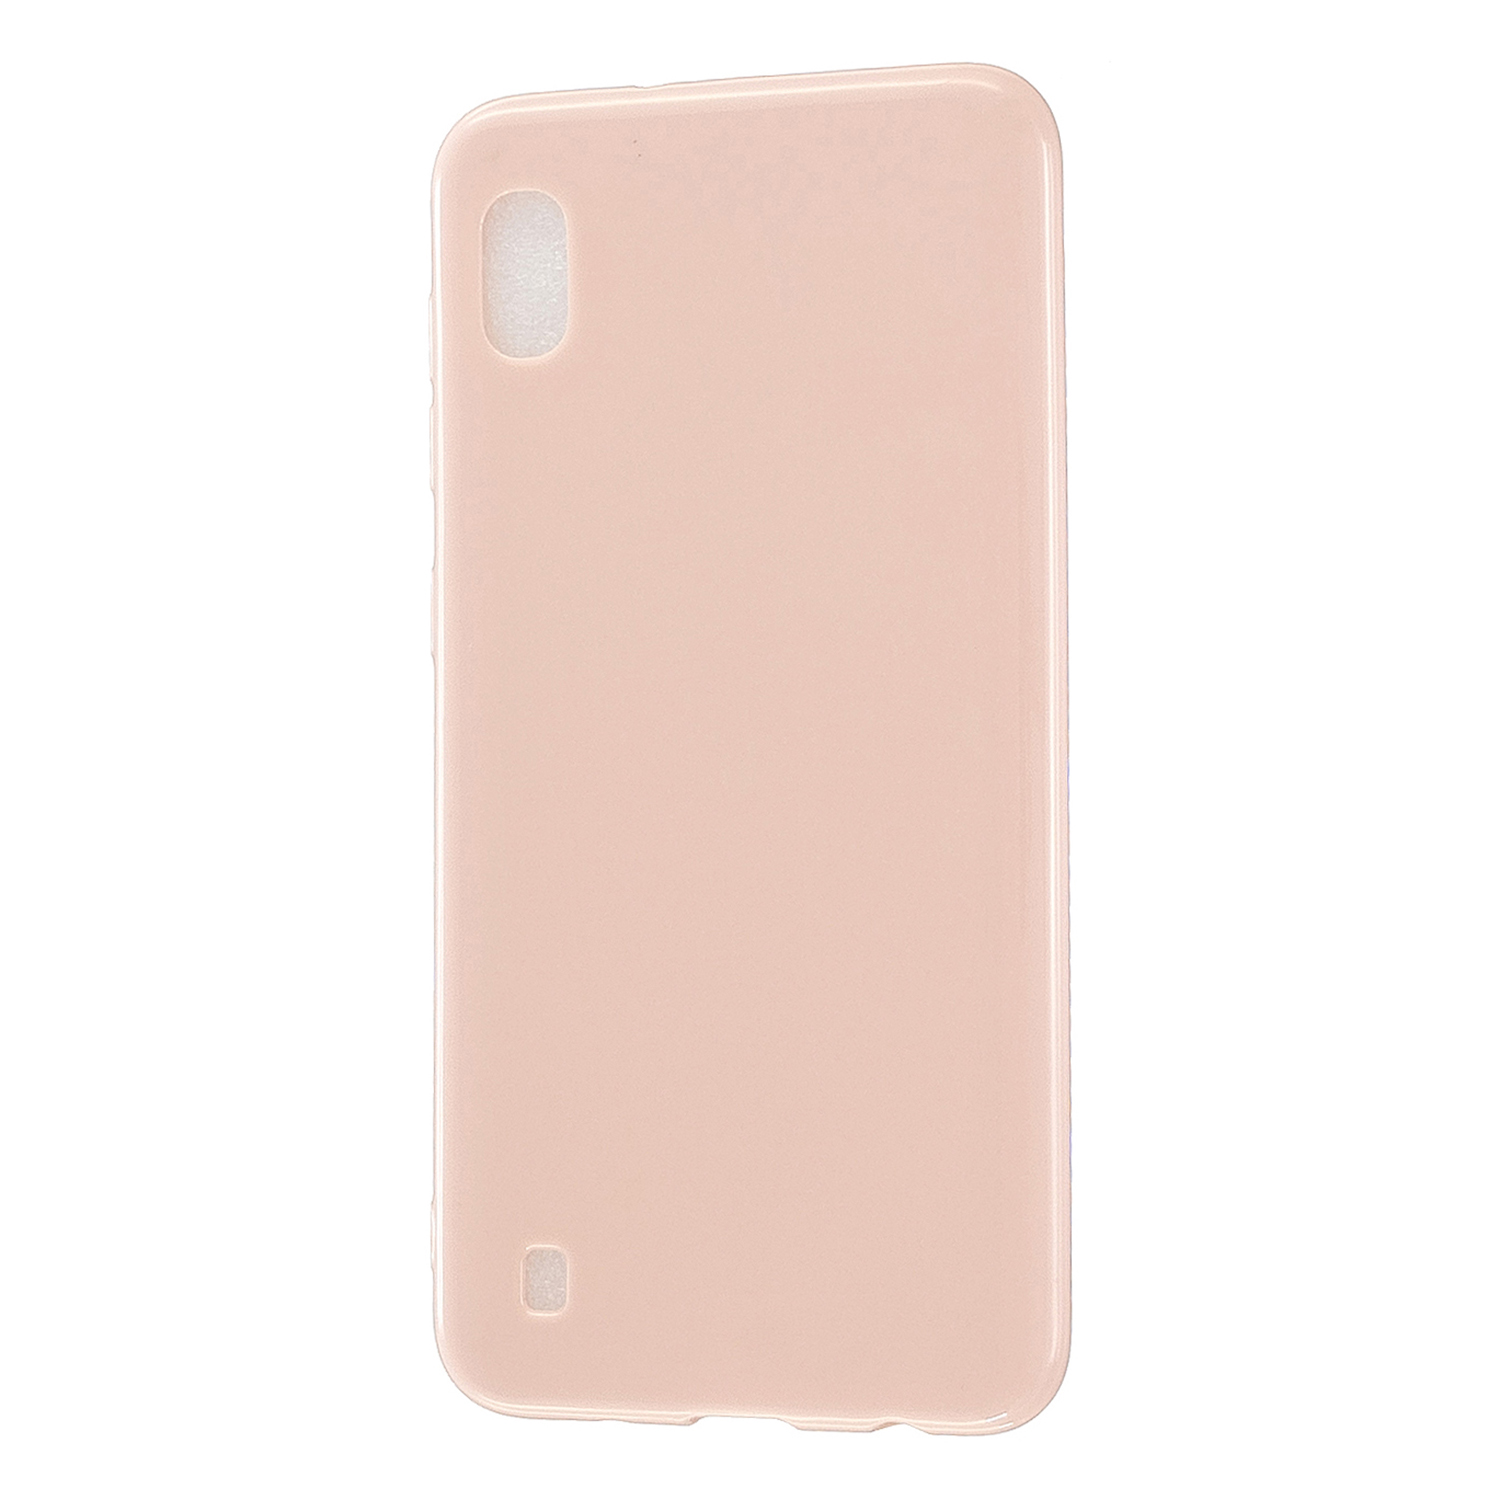 For Samsung A10/A20/A30/A50 Phone Case Soft TPU Overal Protection Precise Cutouts Easy to Install Cellphone Cover  Sakura pink